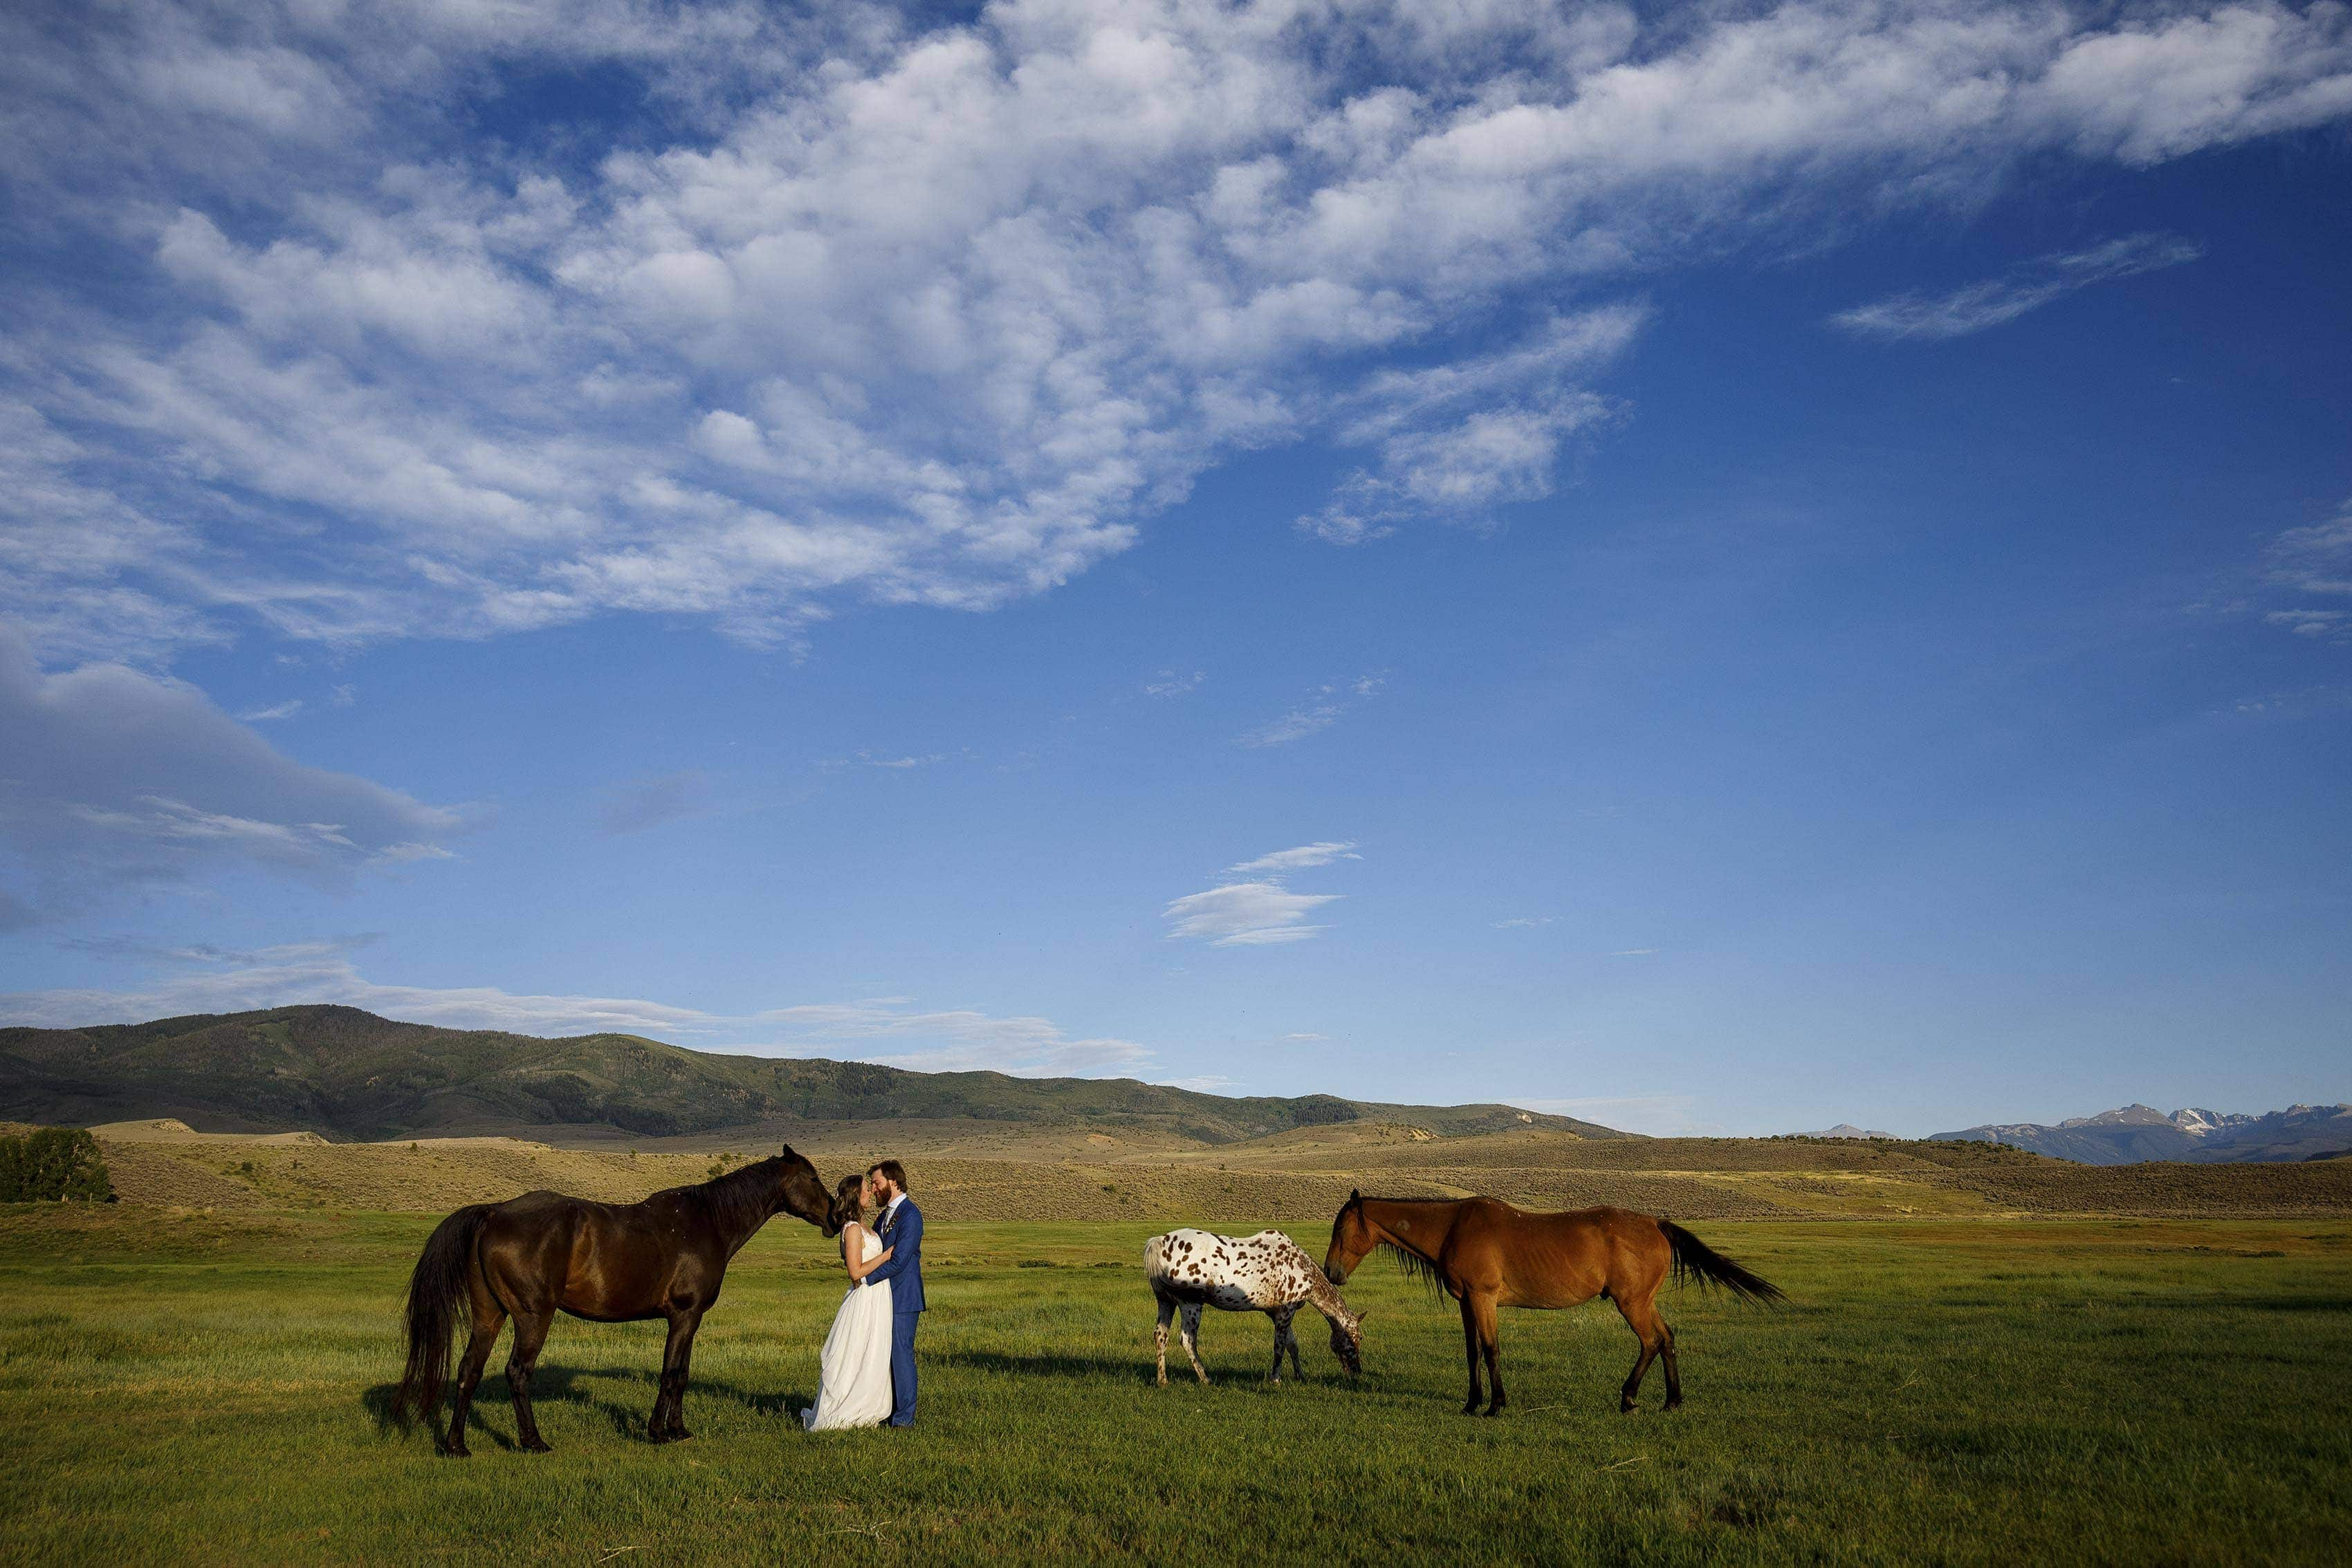 A group of wild horses graze as the newlyweds share a moment together in a field on a summer evening at 4 Eagle Ranch in Wolcott, CO